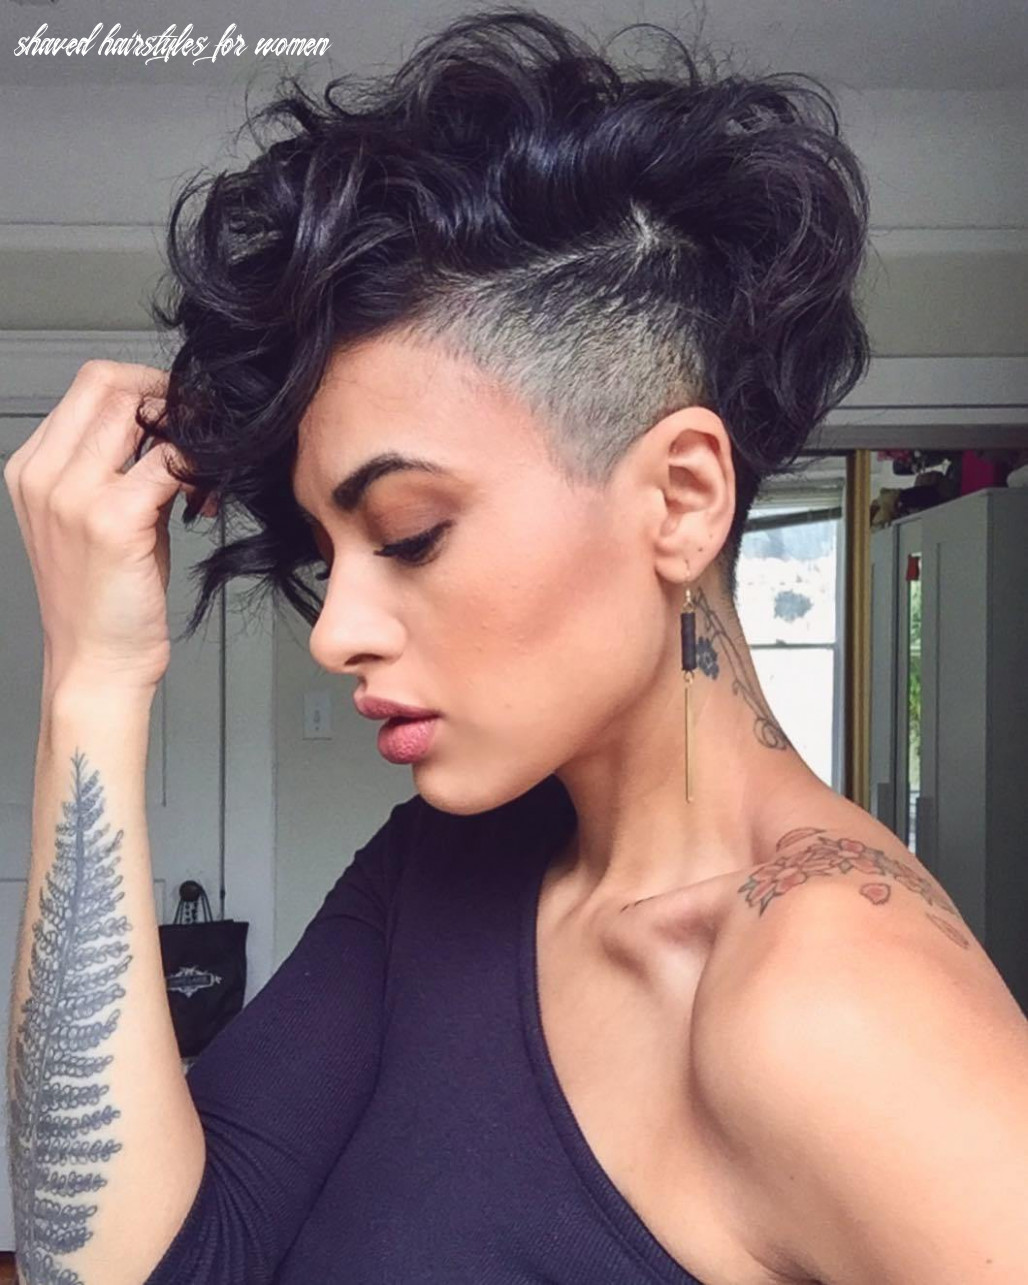 12 bold shaved hairstyles for women | shaved hair designs shaved hairstyles for women